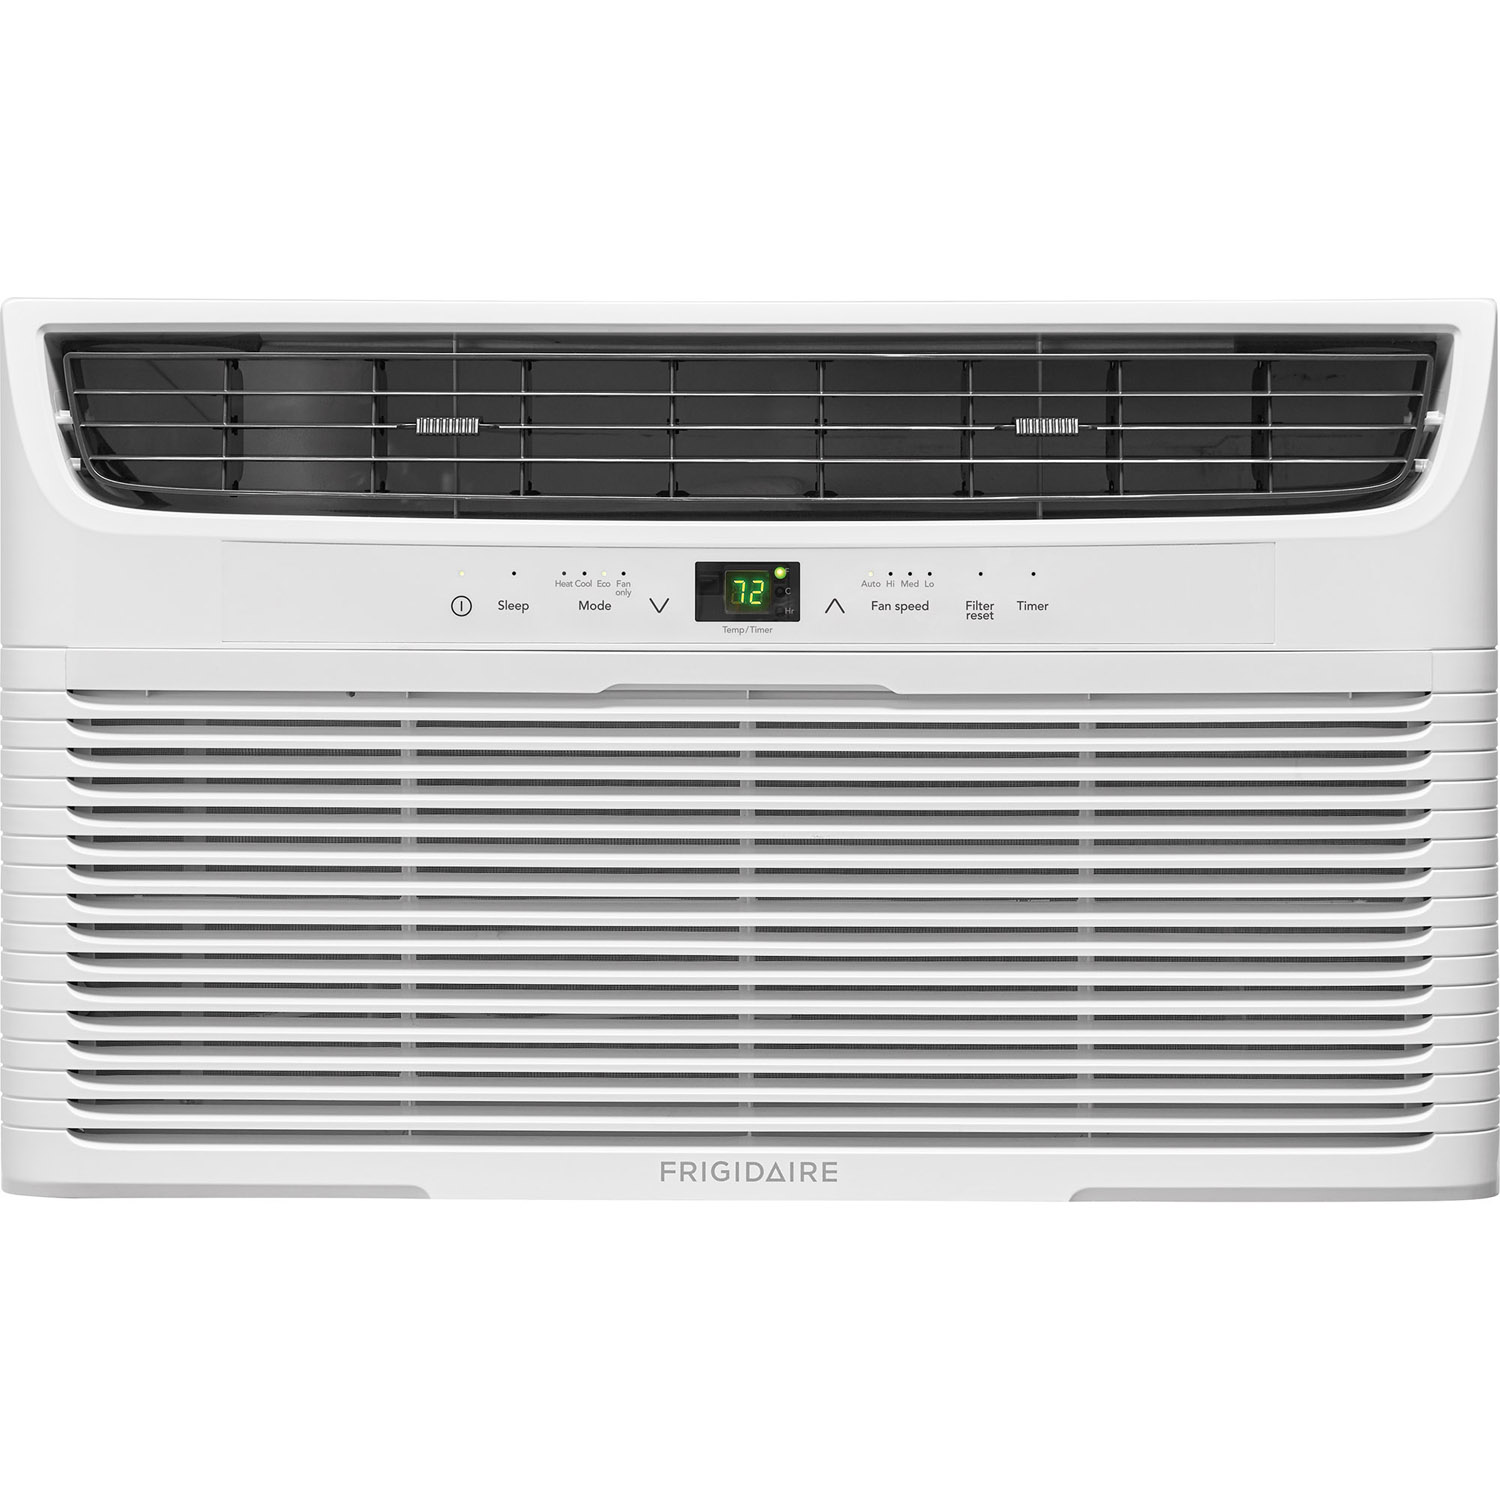 Frigidaire Home Comfort White 14,000 BTU 9.4 EER Through-The-Wall Air Conditioner With Heat